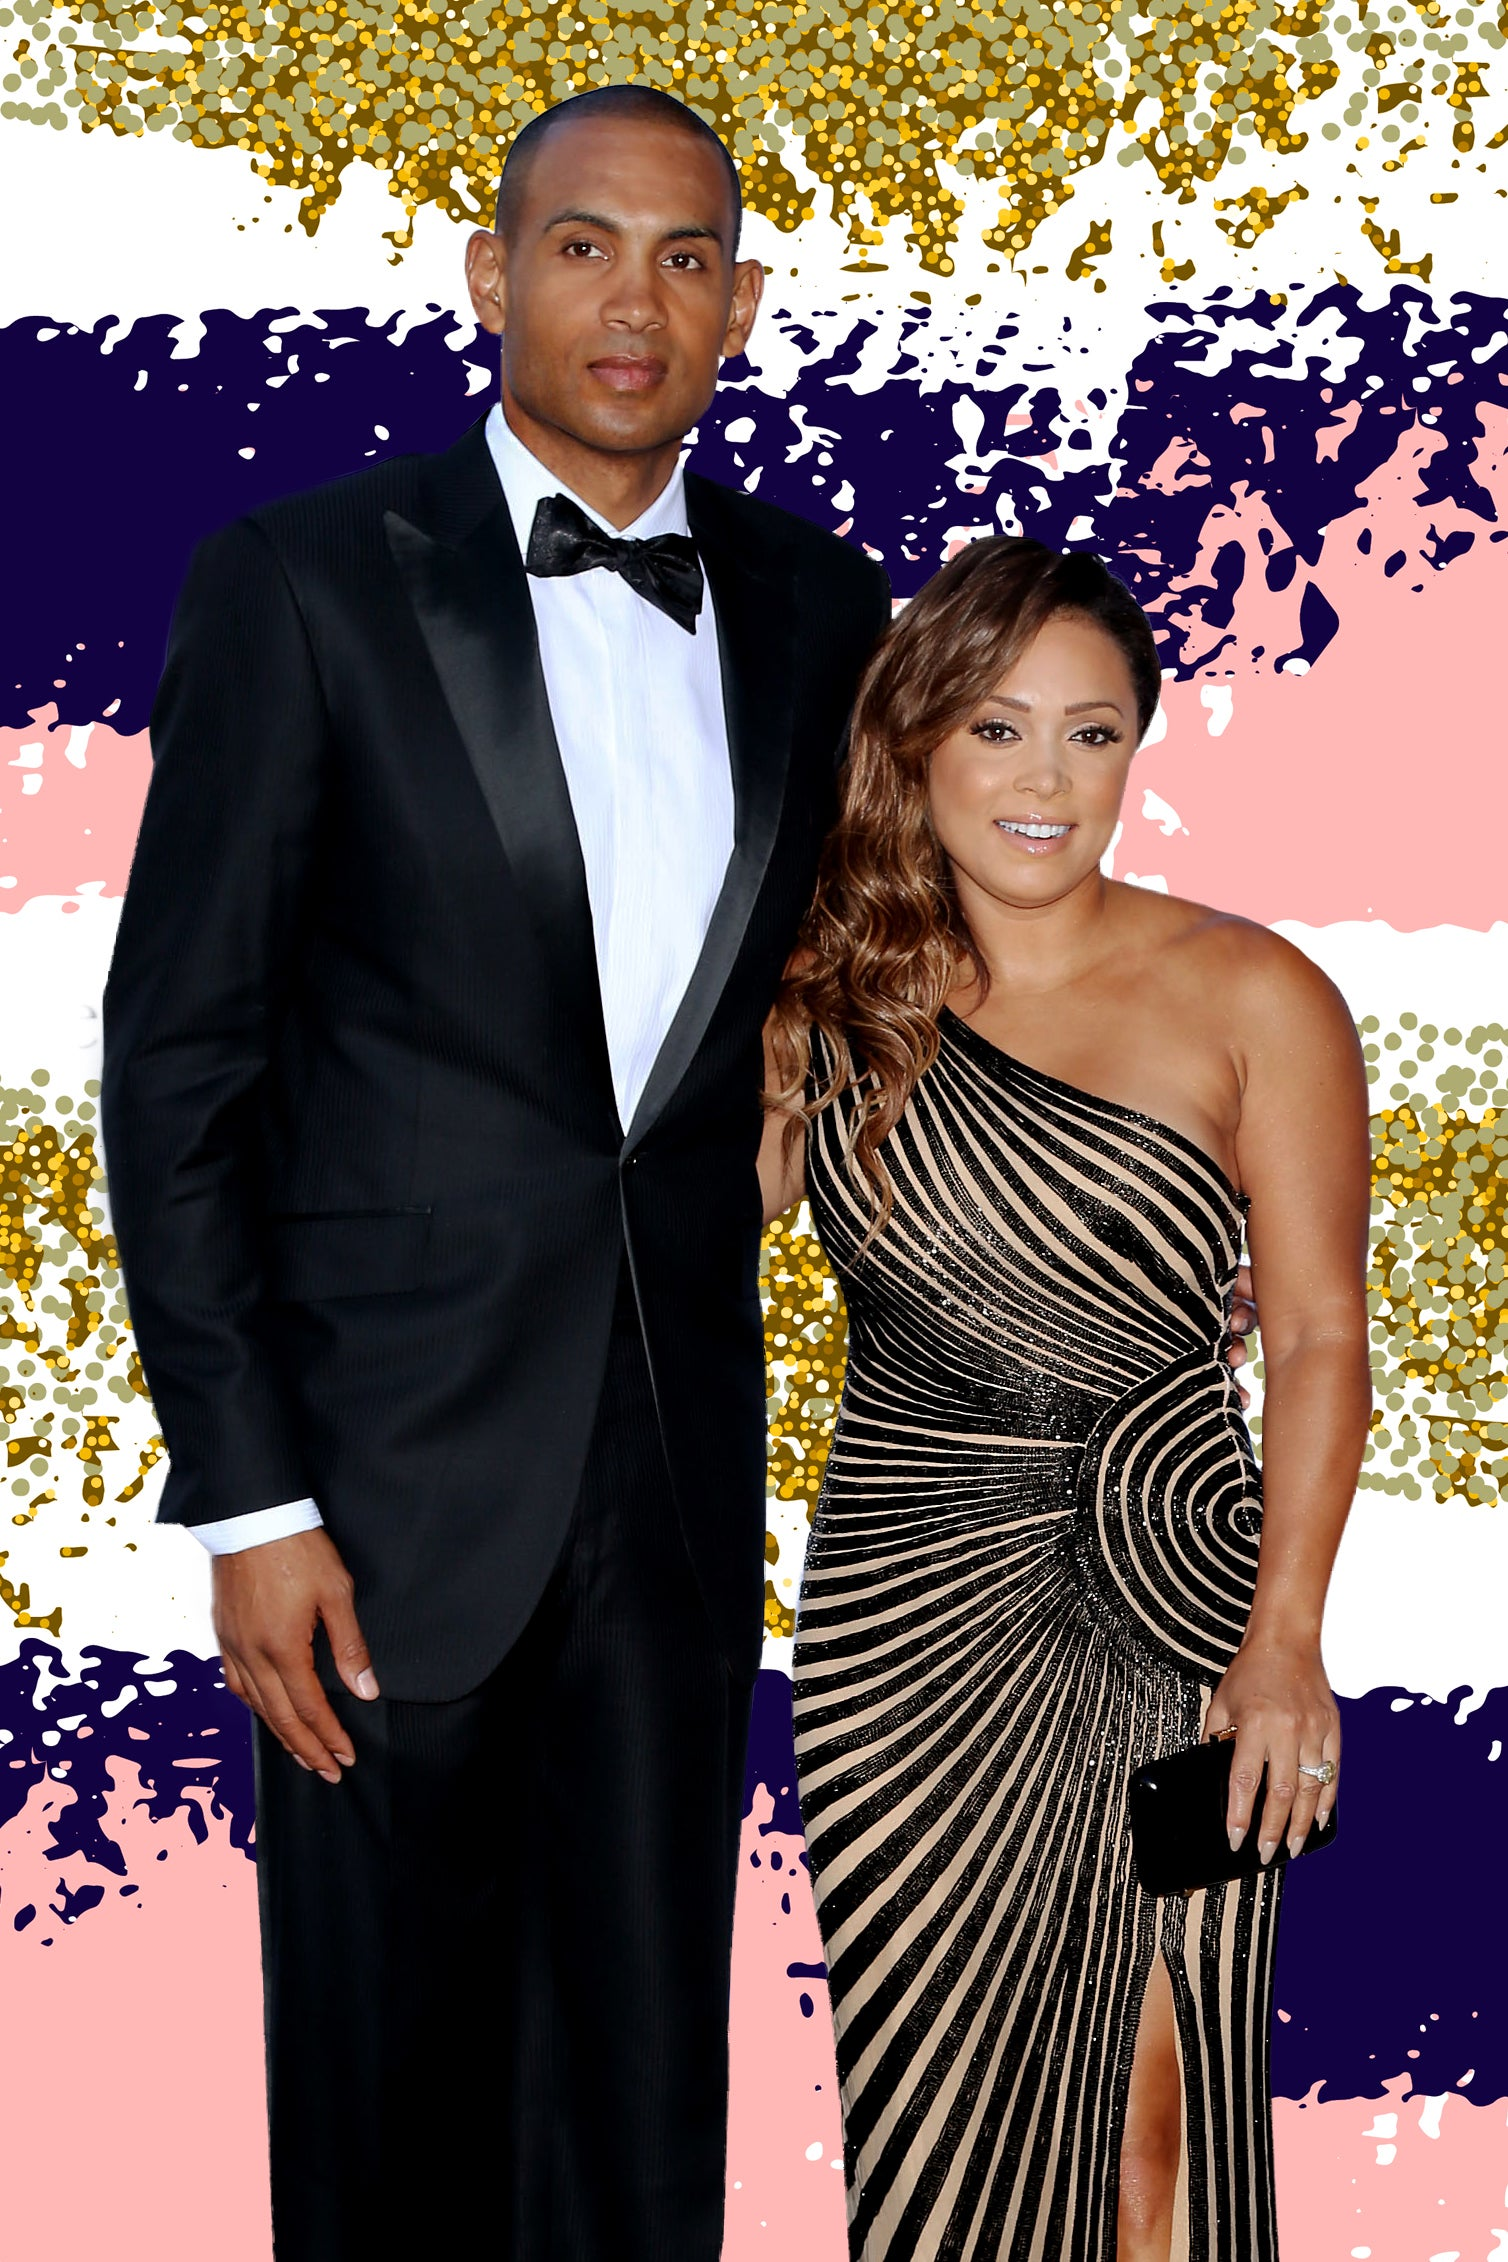 The Sweetest Exclusive: Tamia Premieres New 'Today I Do' Music Video For Her And Husband Grant Hill's 19th Wedding Anniversary